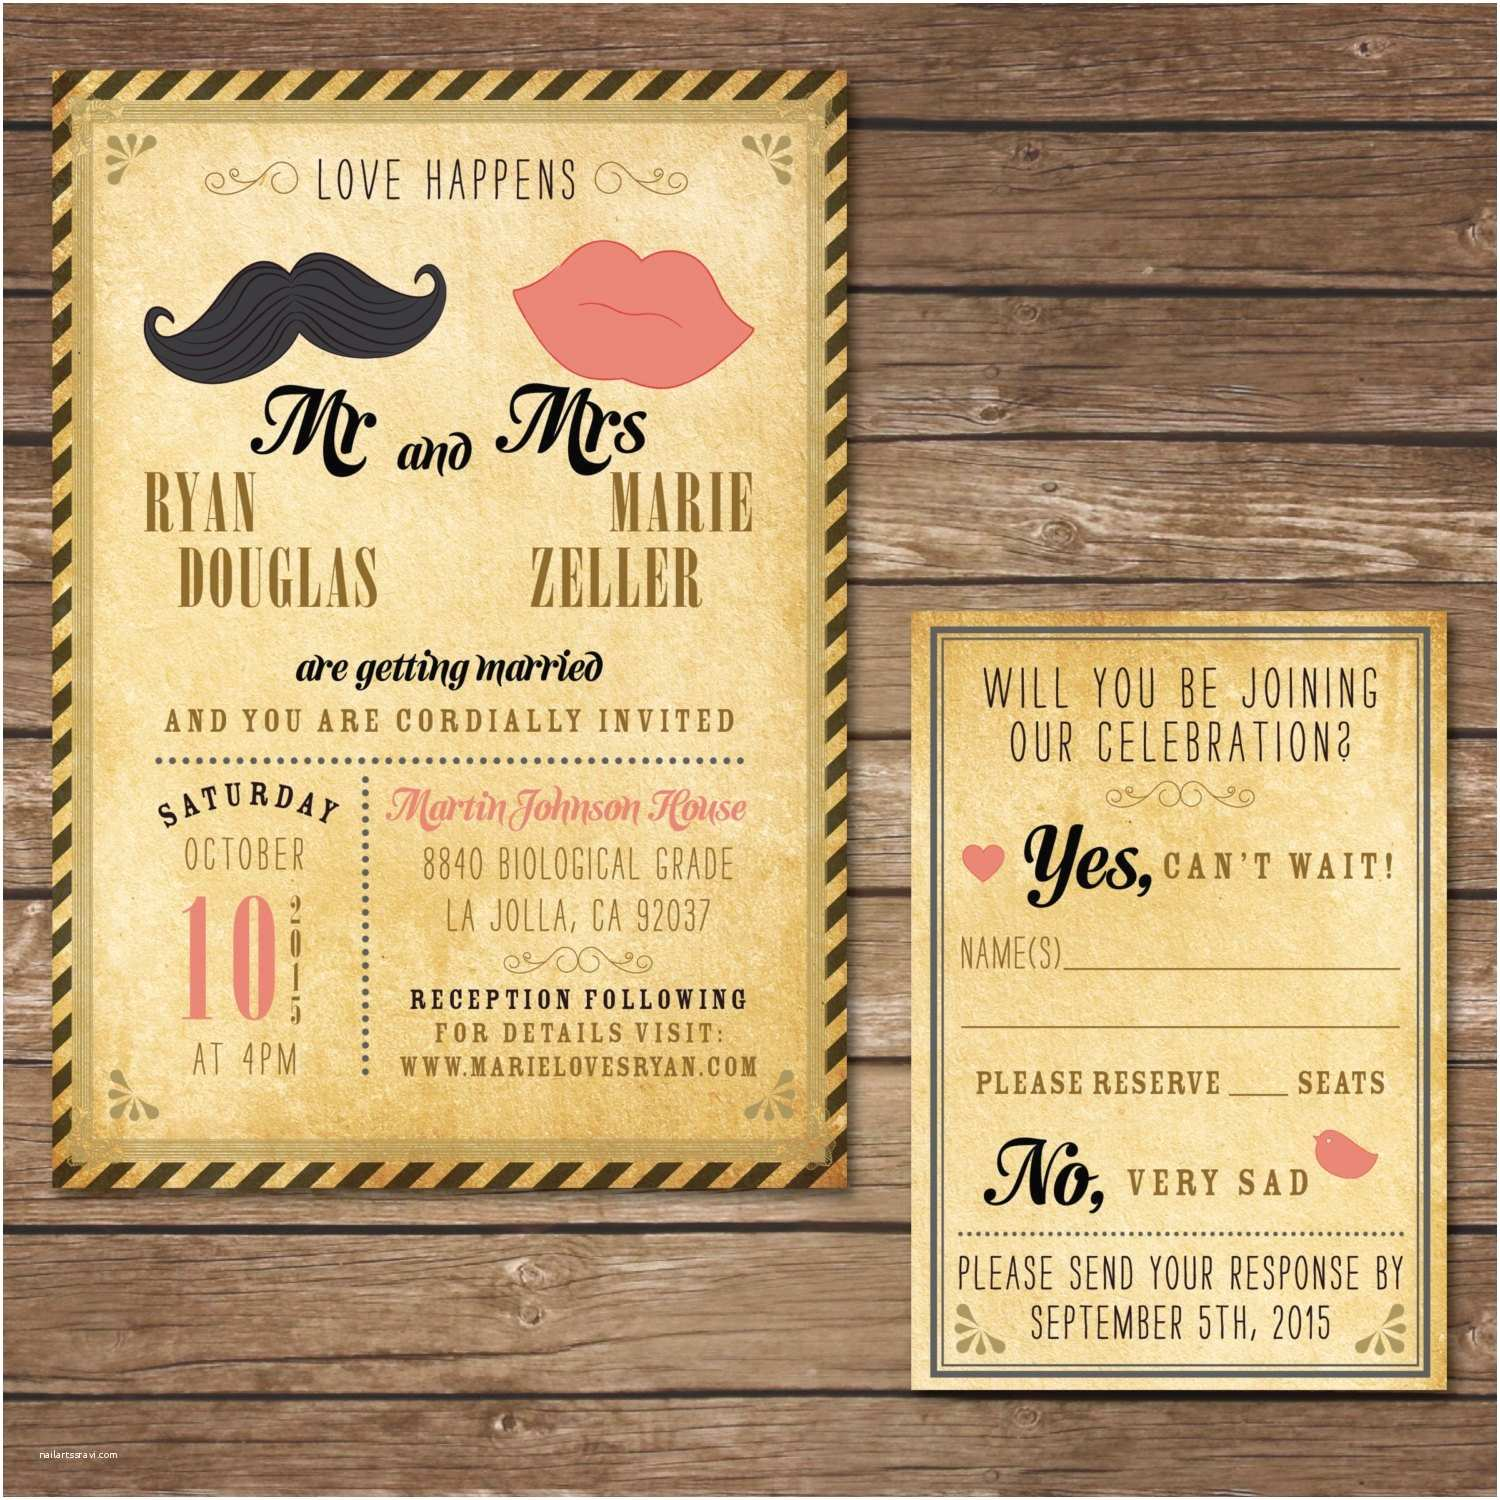 Hipster Wedding Invitations Printable Hipster Wedding Invitation with Rsvp Card Digital